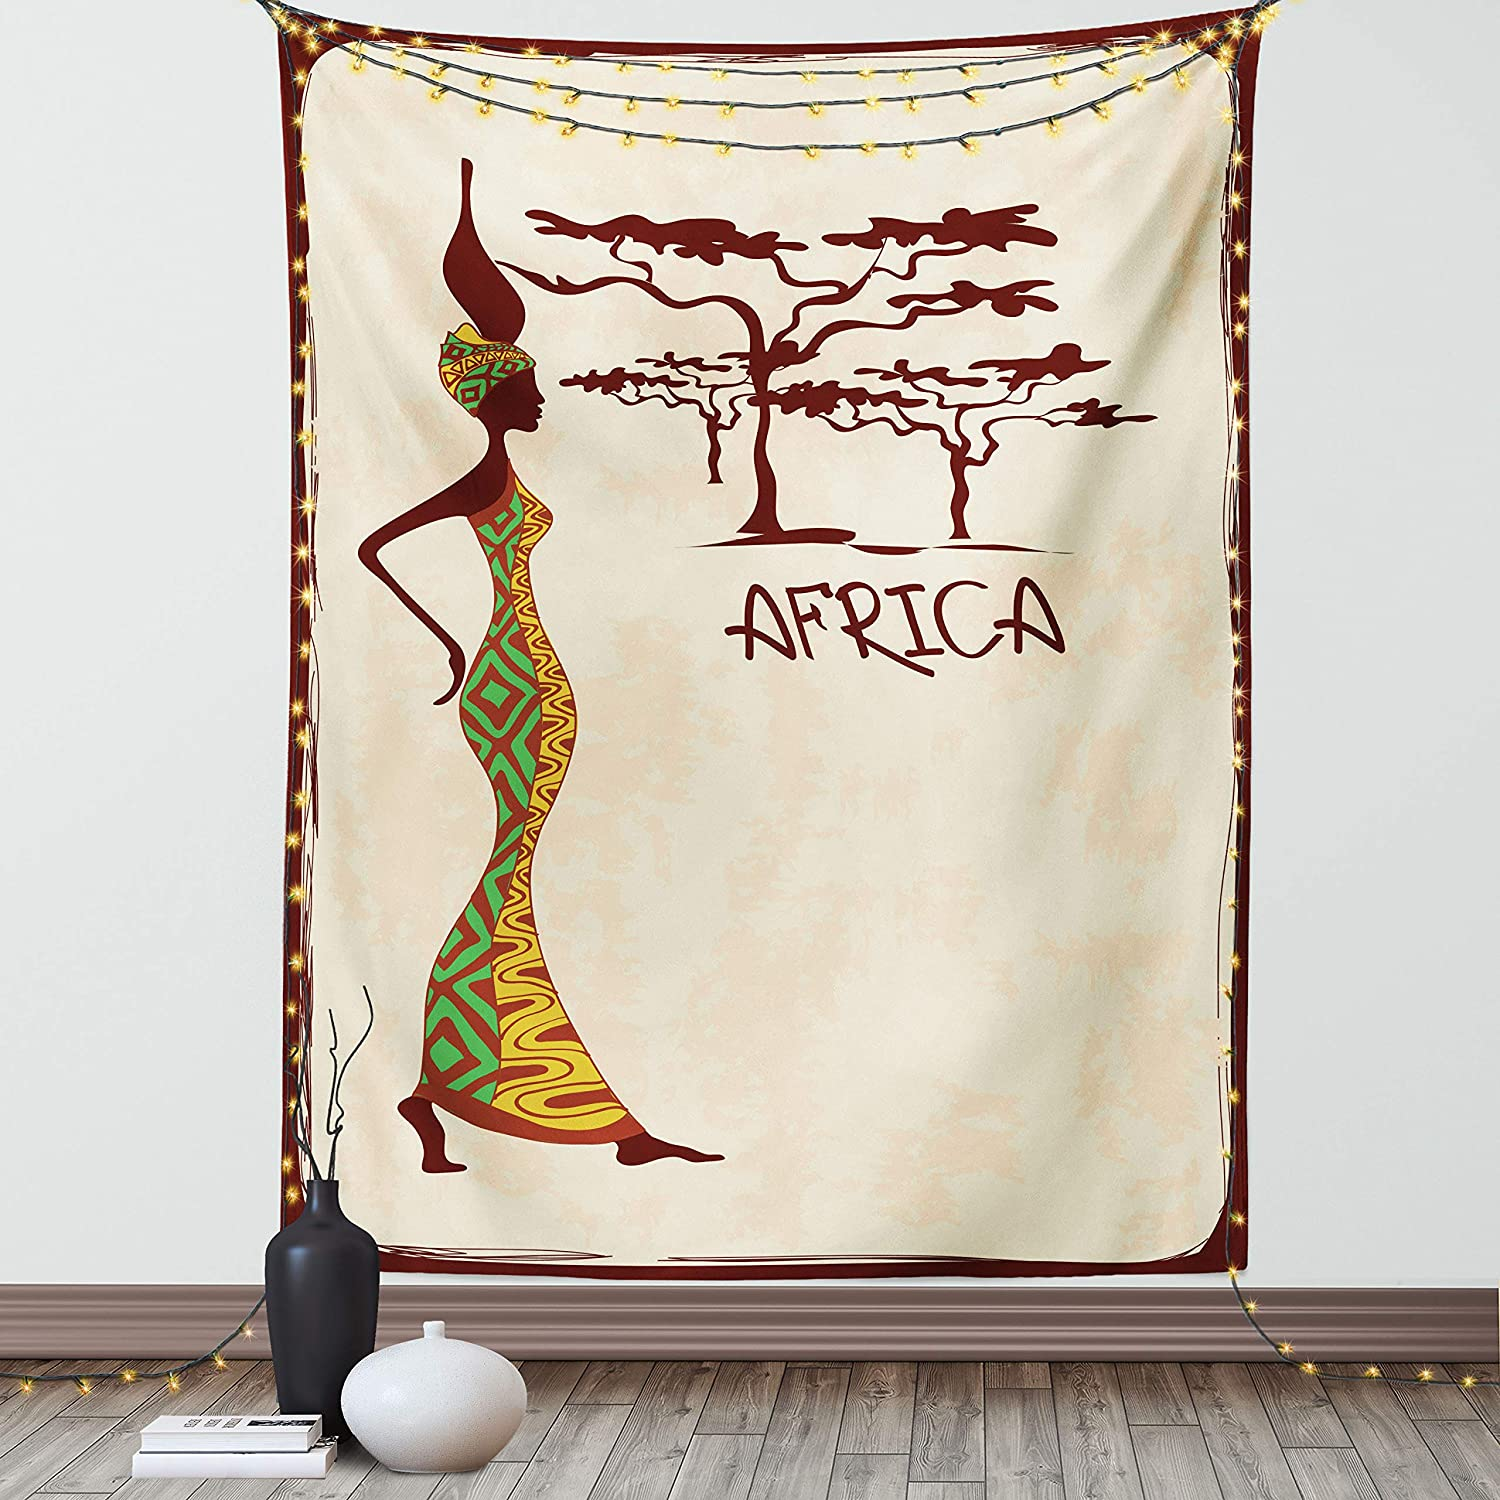 Lunarable African Tapestry, Vintage Lady Carrying a Pot Native Grace Savannah Exotic Female Graphic, Fabric Wall Hanging Decor for Bedroom Living Room Dorm, 30